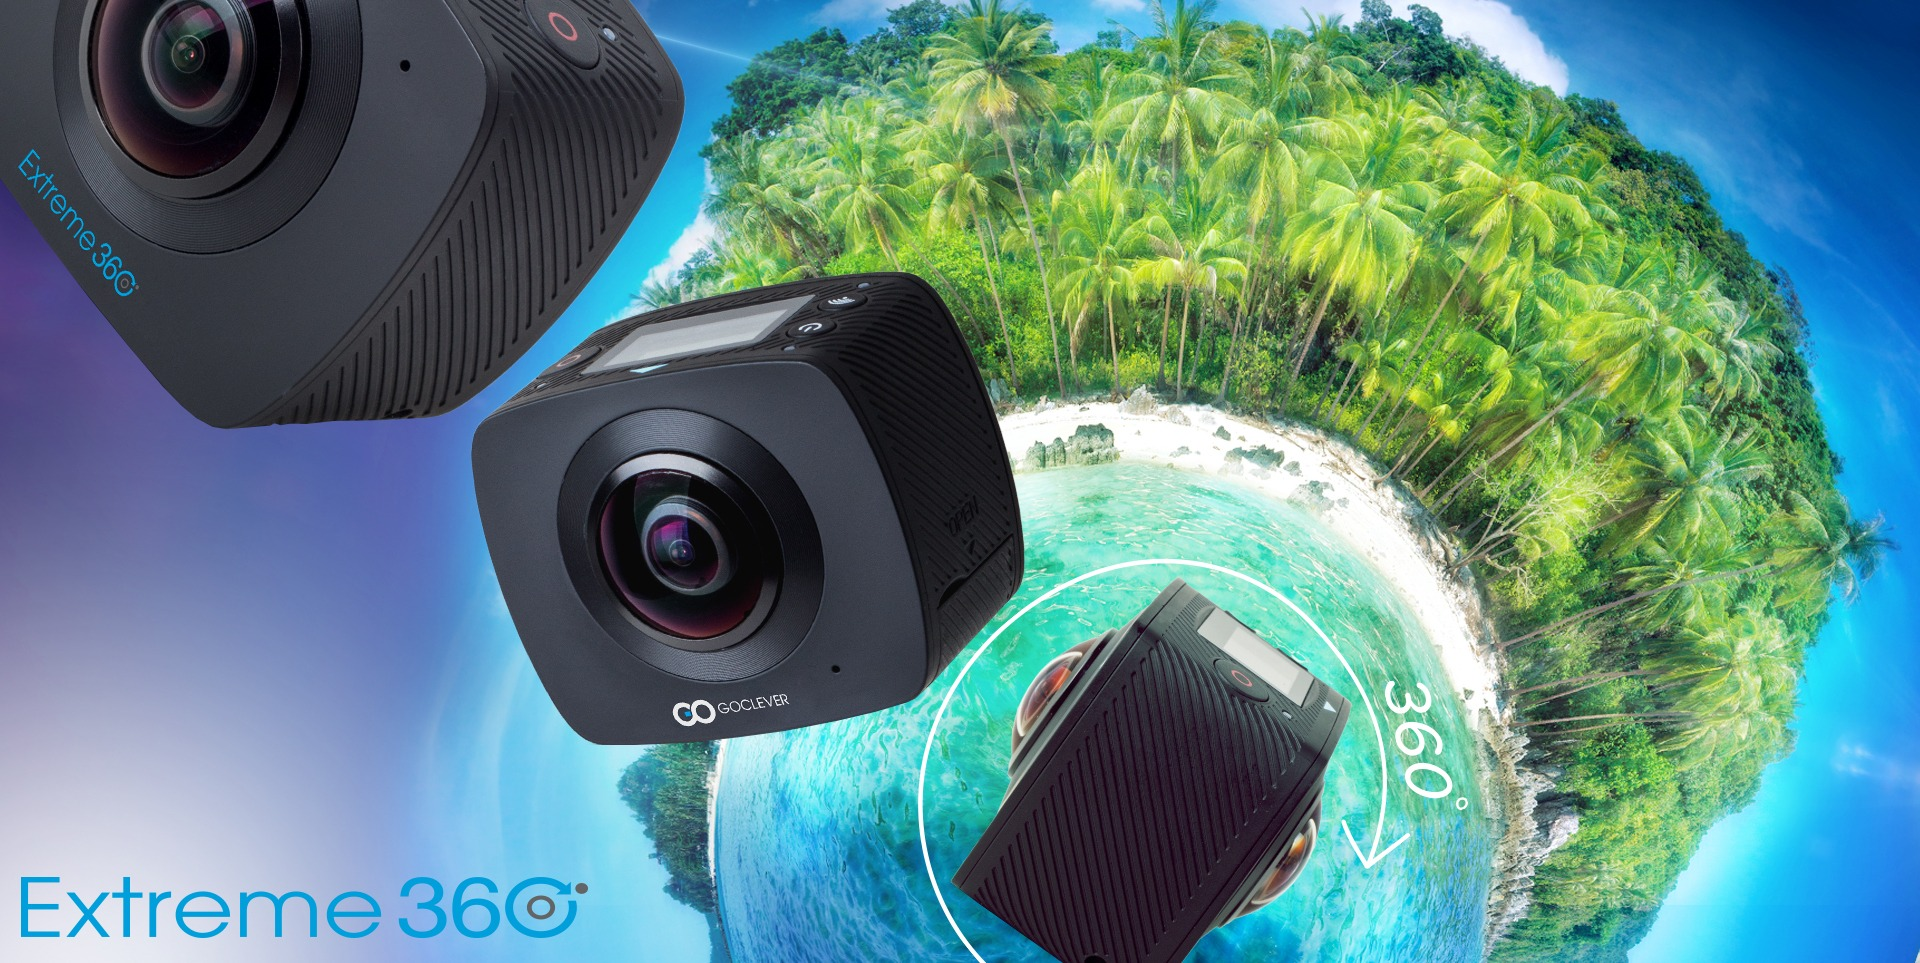 goclever camera extreme 360